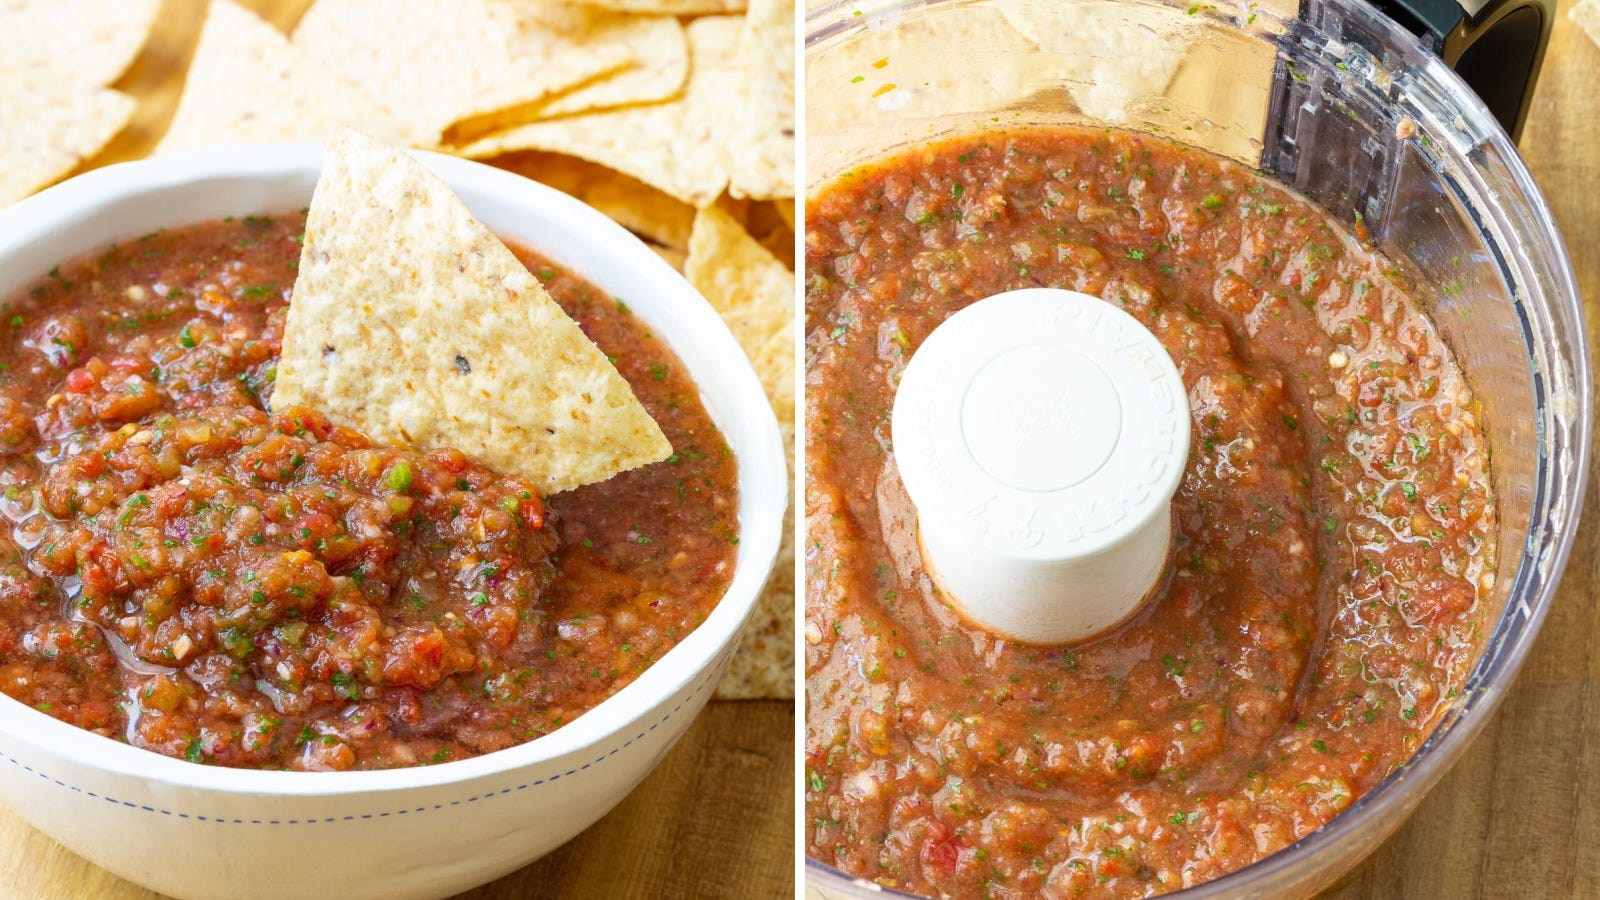 Two images: The left image features a bowl of freshly made salsa with one tortilla chip dipped in it, and the right image features a food processor with salsa in it.